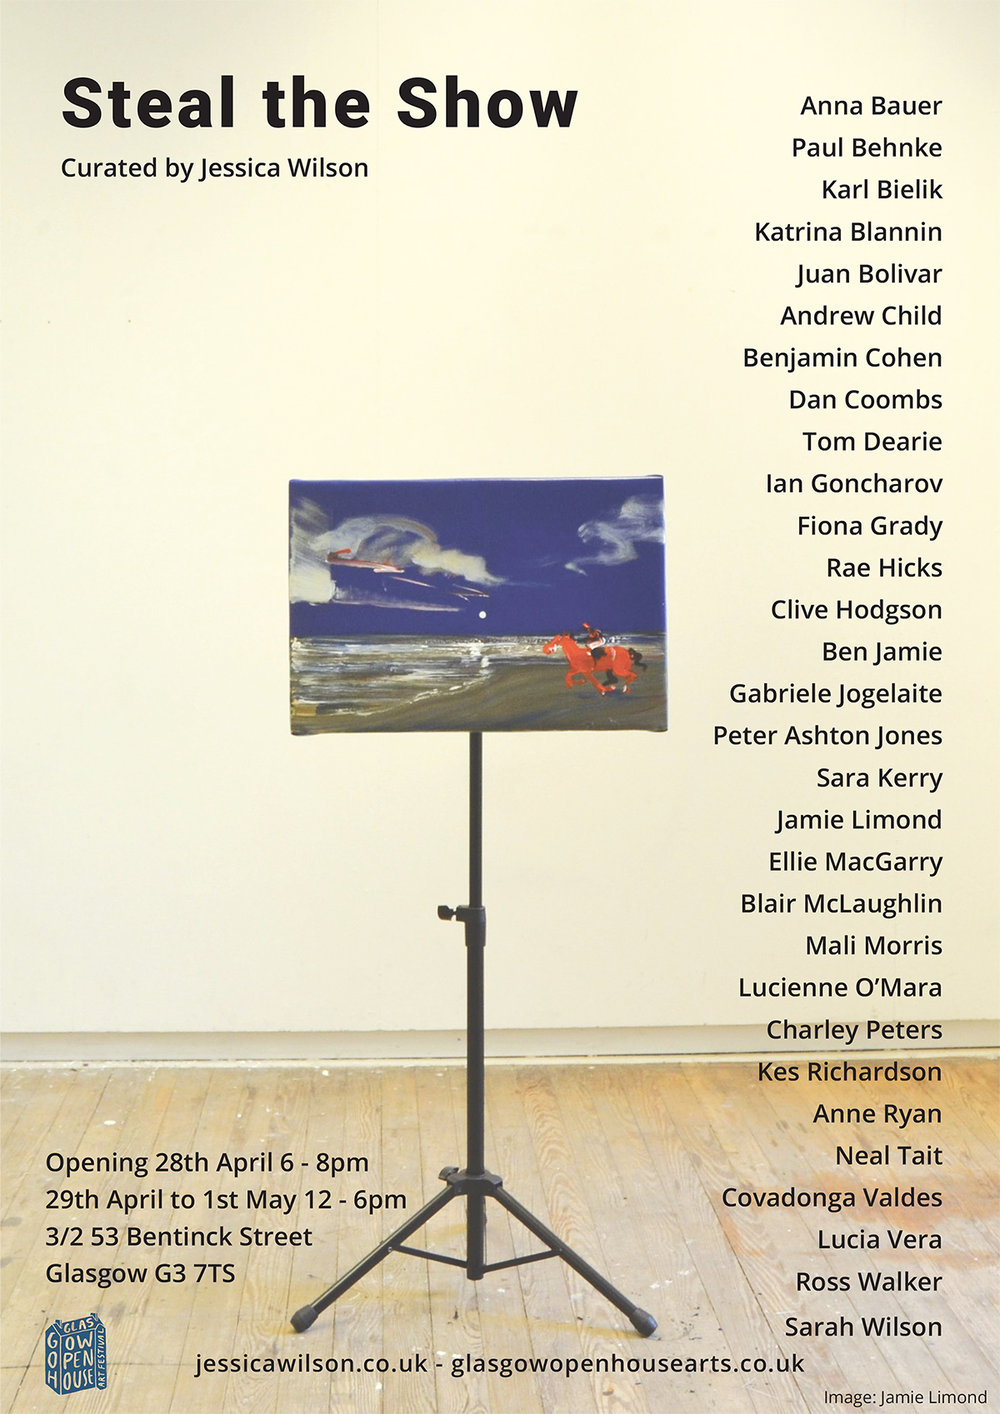 - Curated by Jessica Wilson, 'Steal the show' will be a salon style exhibition that reflects the energy, range and diversity within contemporary painting practice throughout the UK.Works by emerging and mid career artists will be selected, presenting a dynamic range of practices and dialogues taking place today.